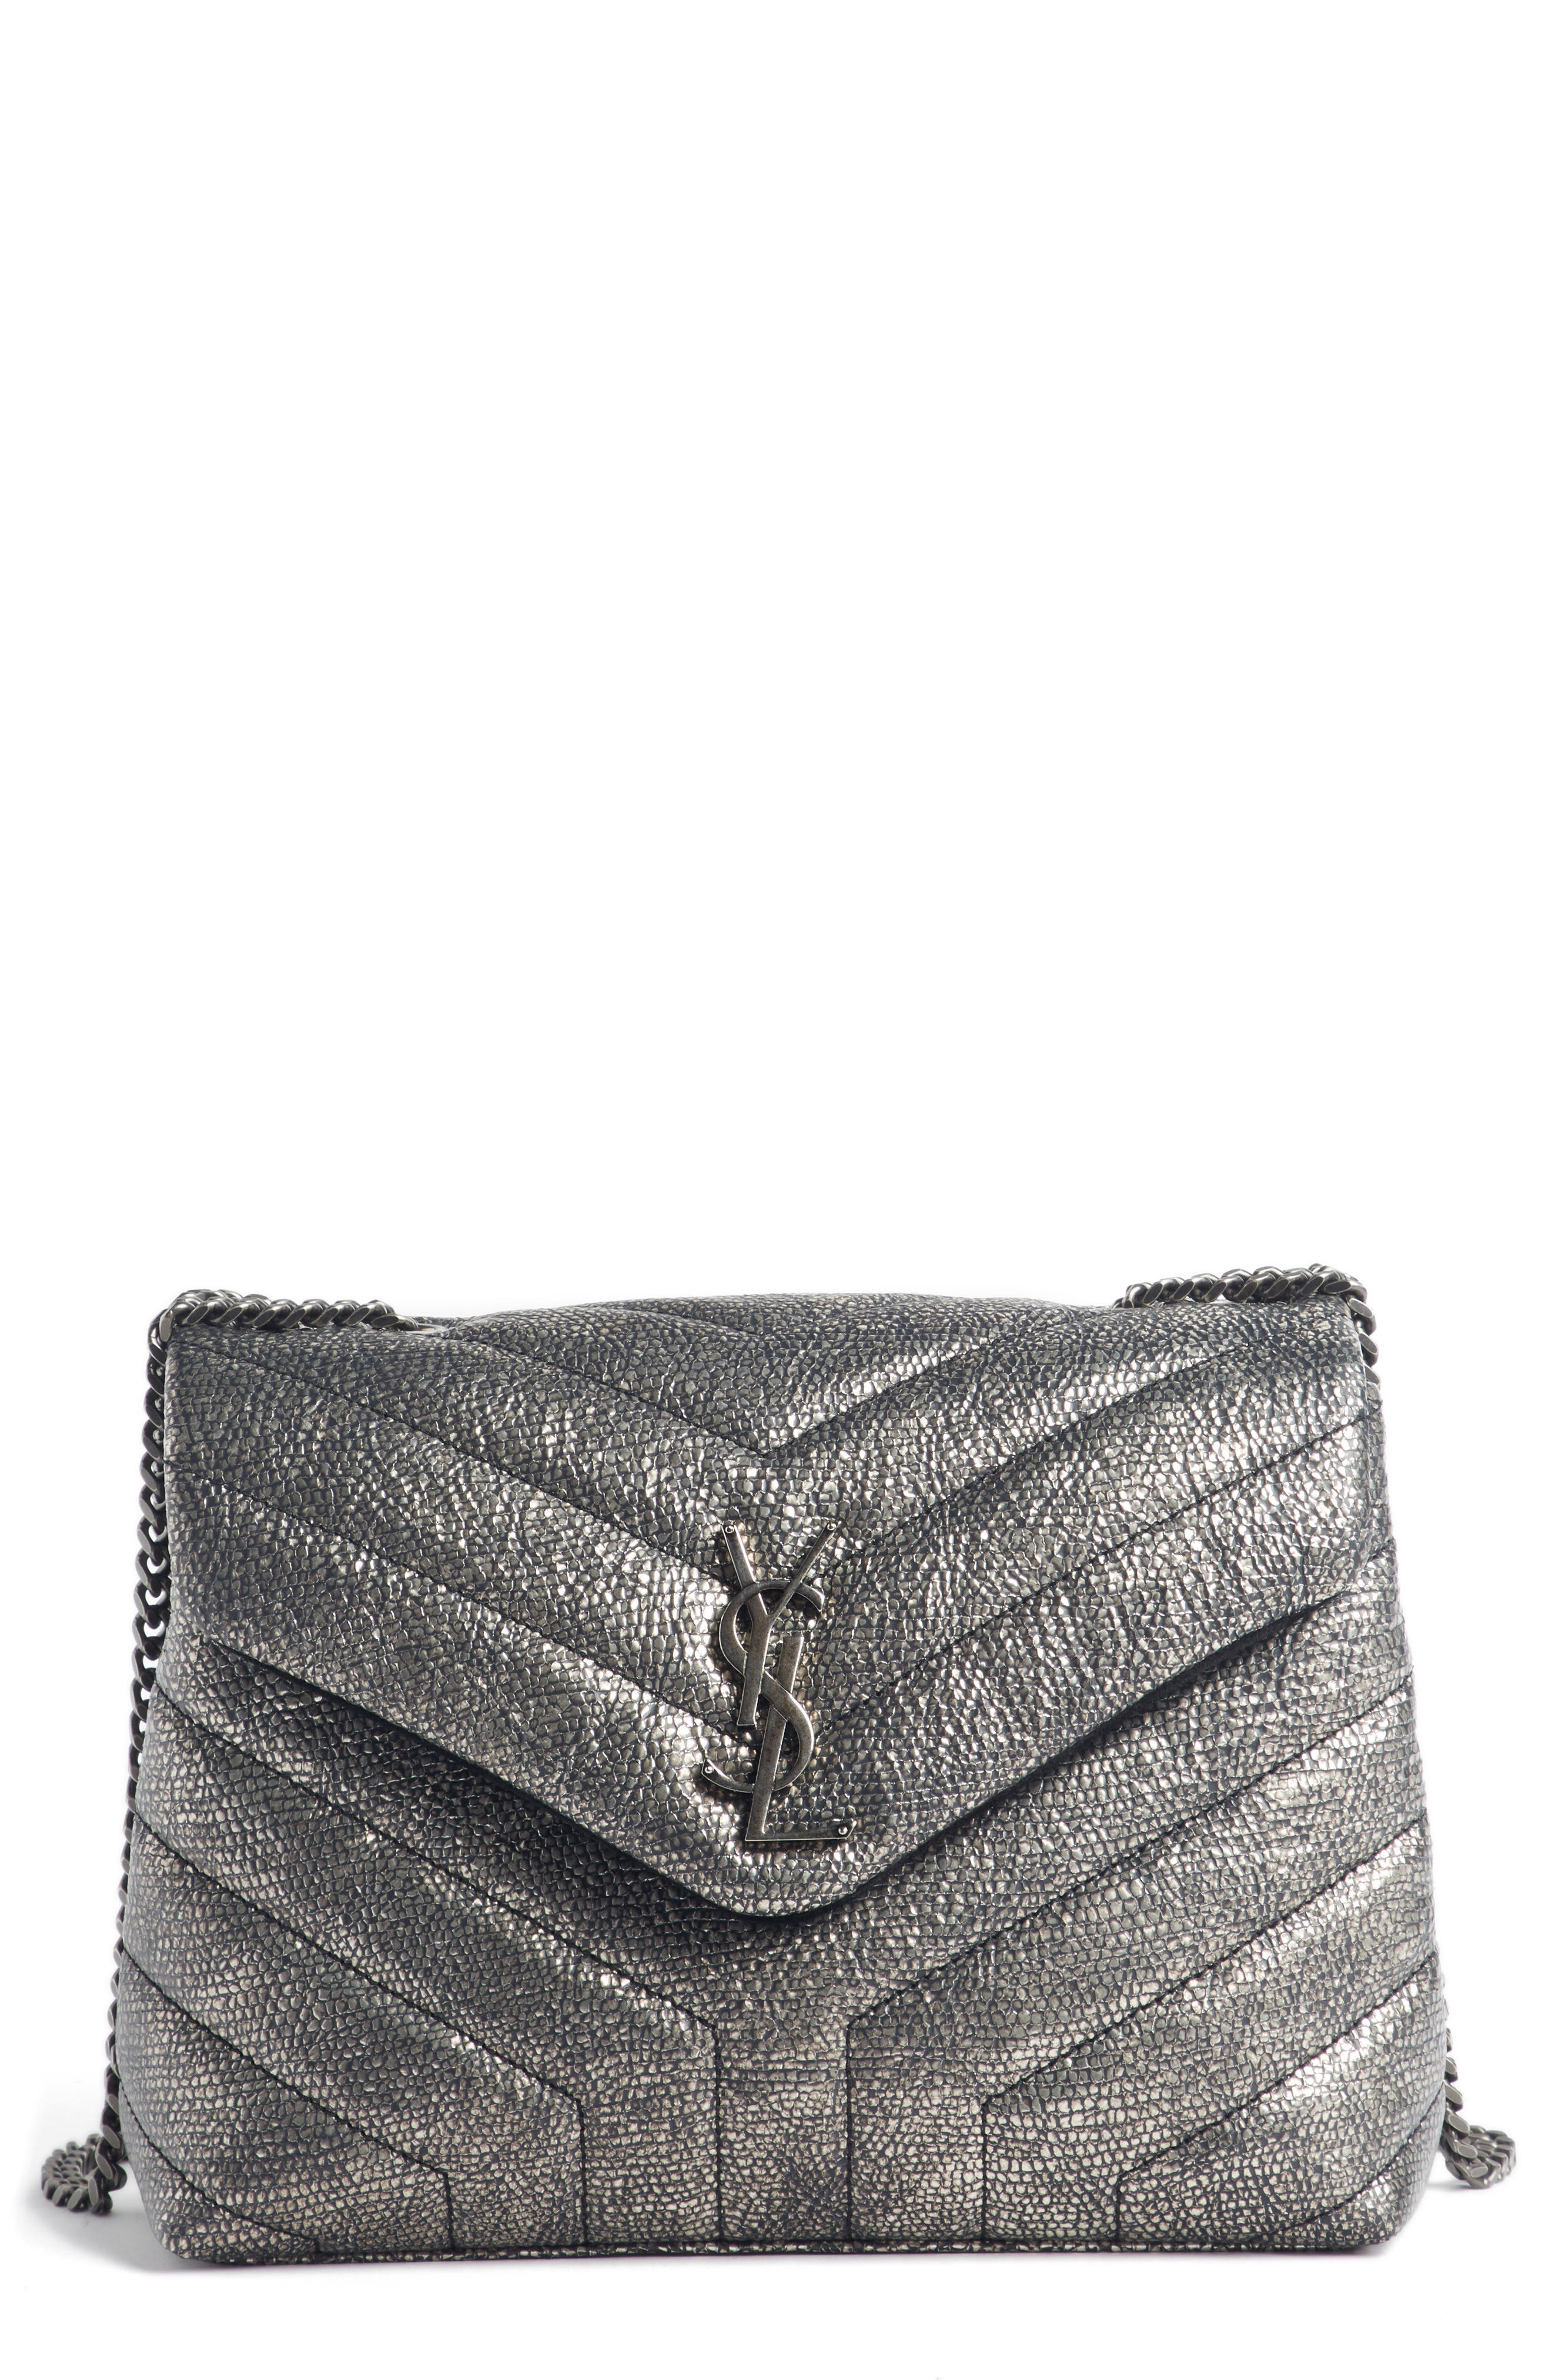 Loulou Small Metallic Leather Shoulder Bag,                         Main,                         color, GRAPHTIE